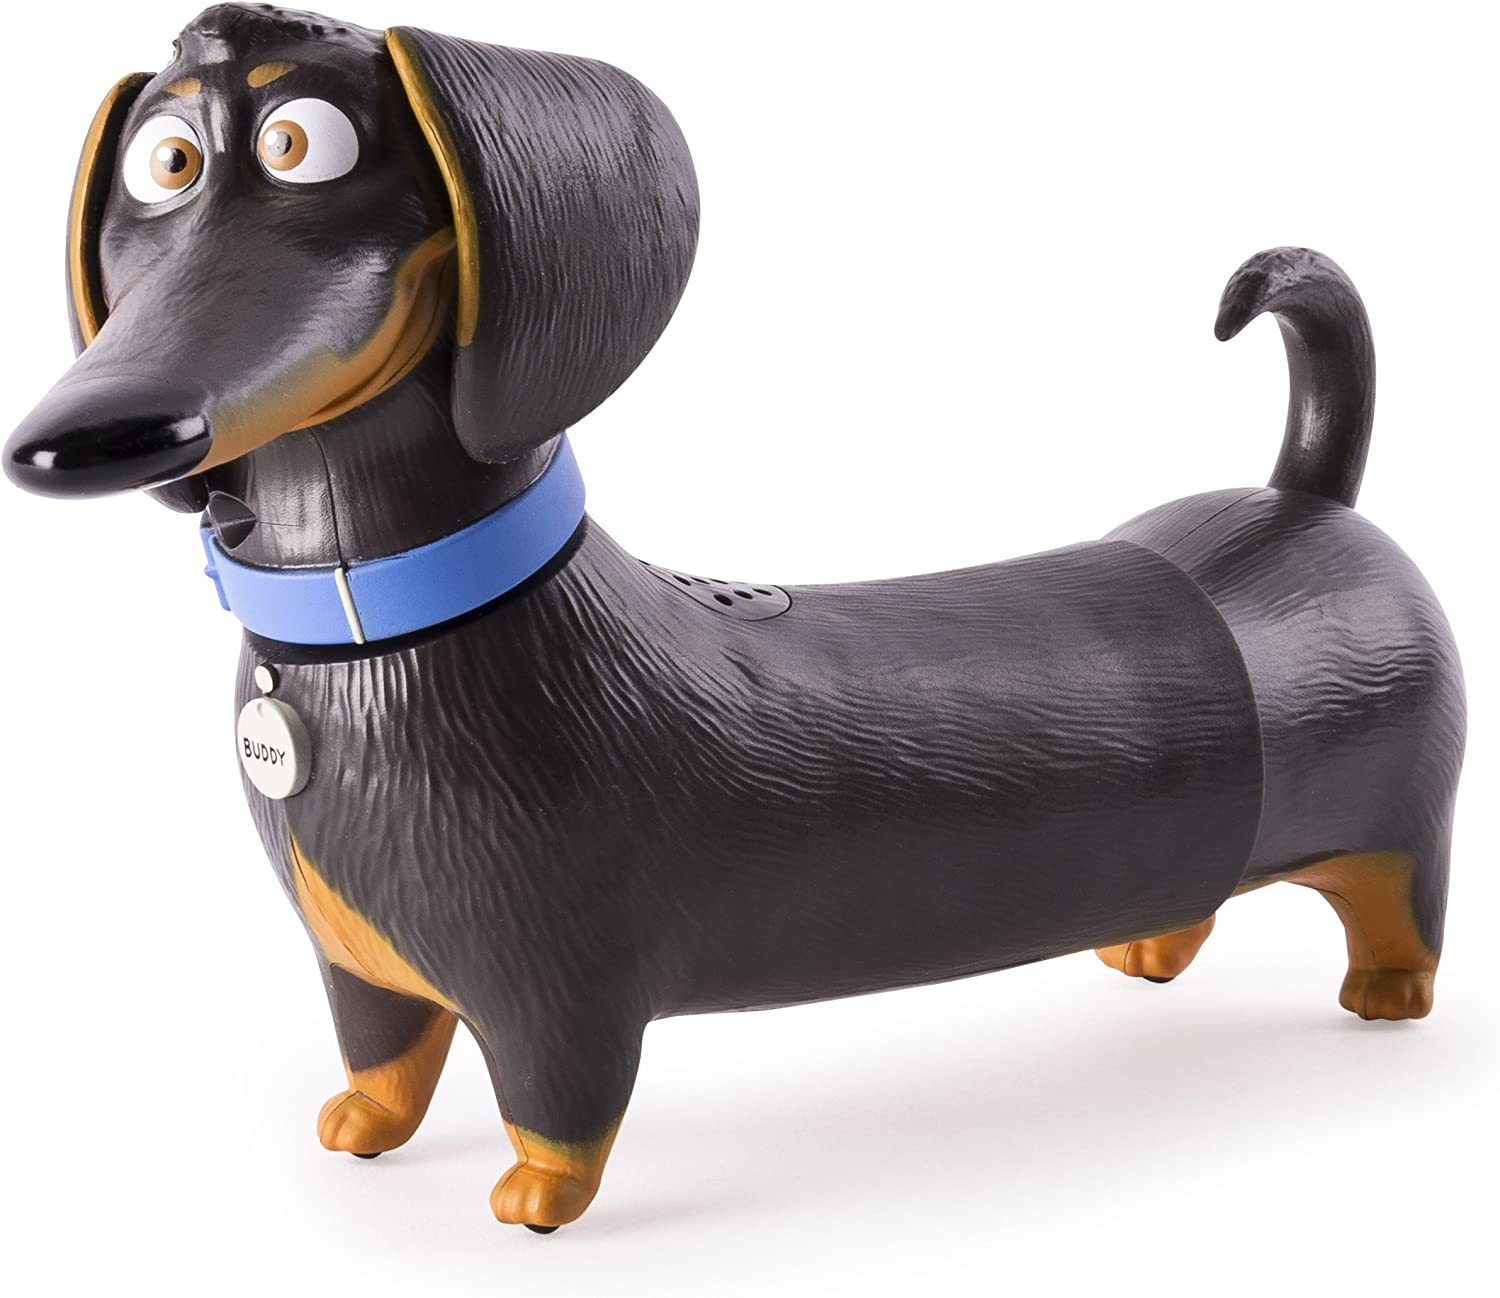 The Secret Life of Pets - Buddy Walking Talking Pets Figure